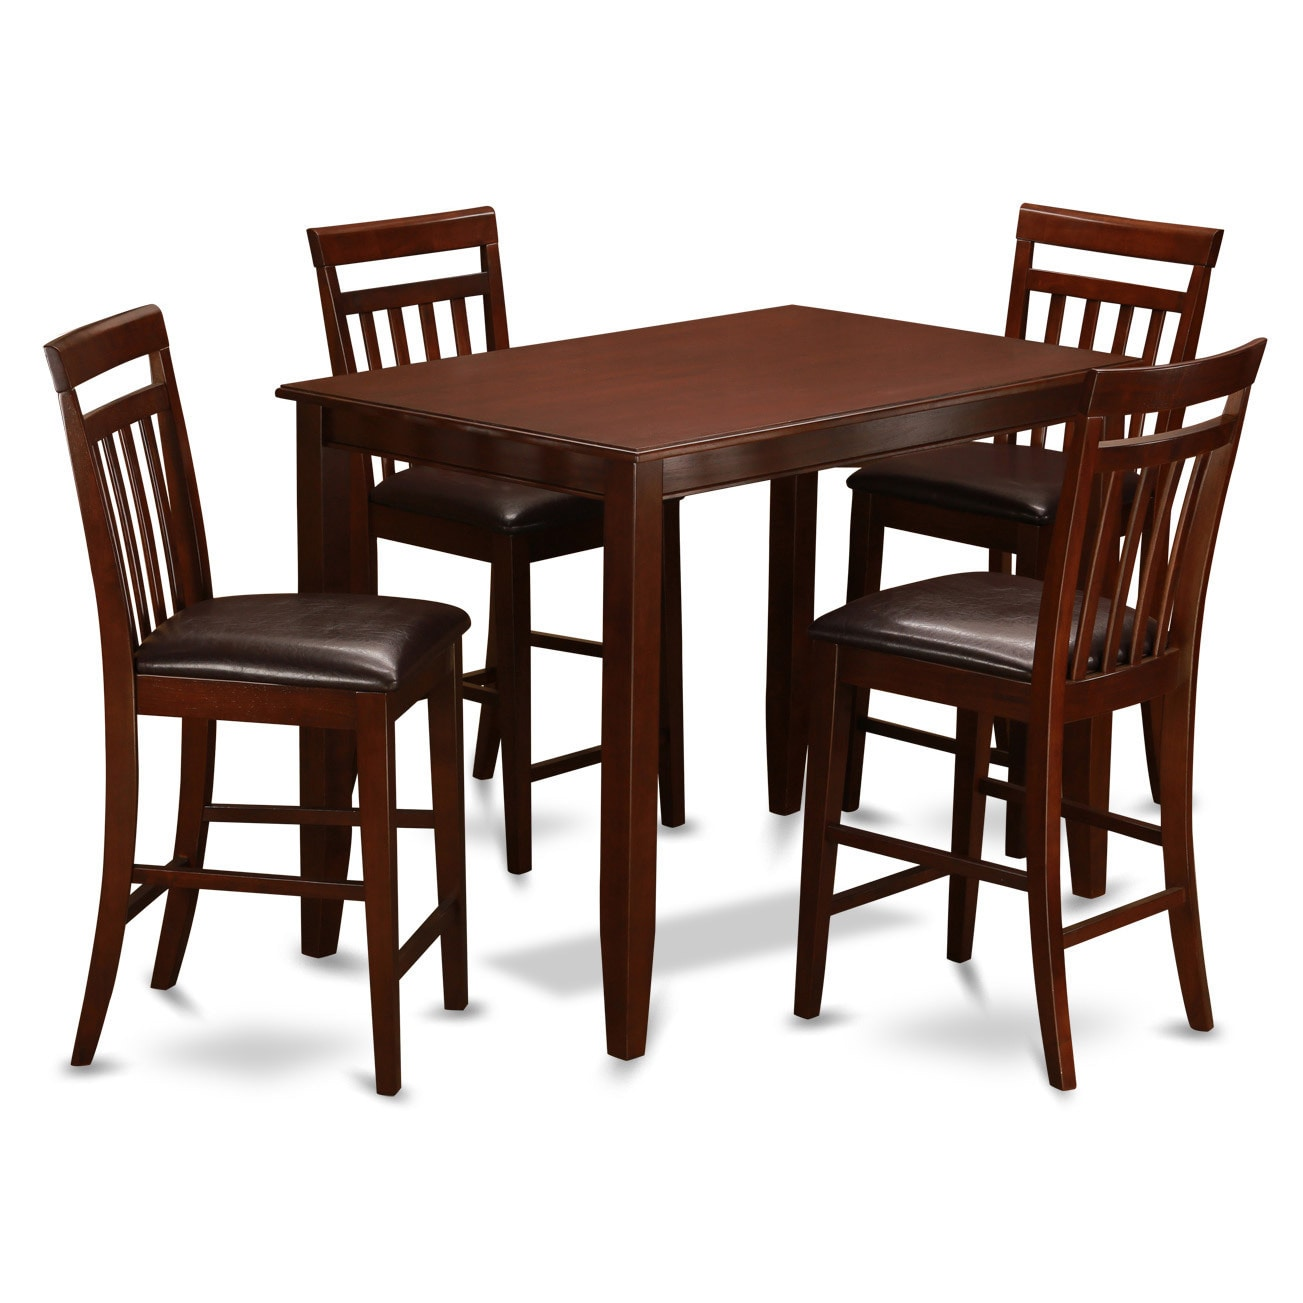 Dining Room Furniture 5pc Mahogany Stained Wood Round: 84 Inch Dining Table Rustic Wood Dining Room Set In Dark